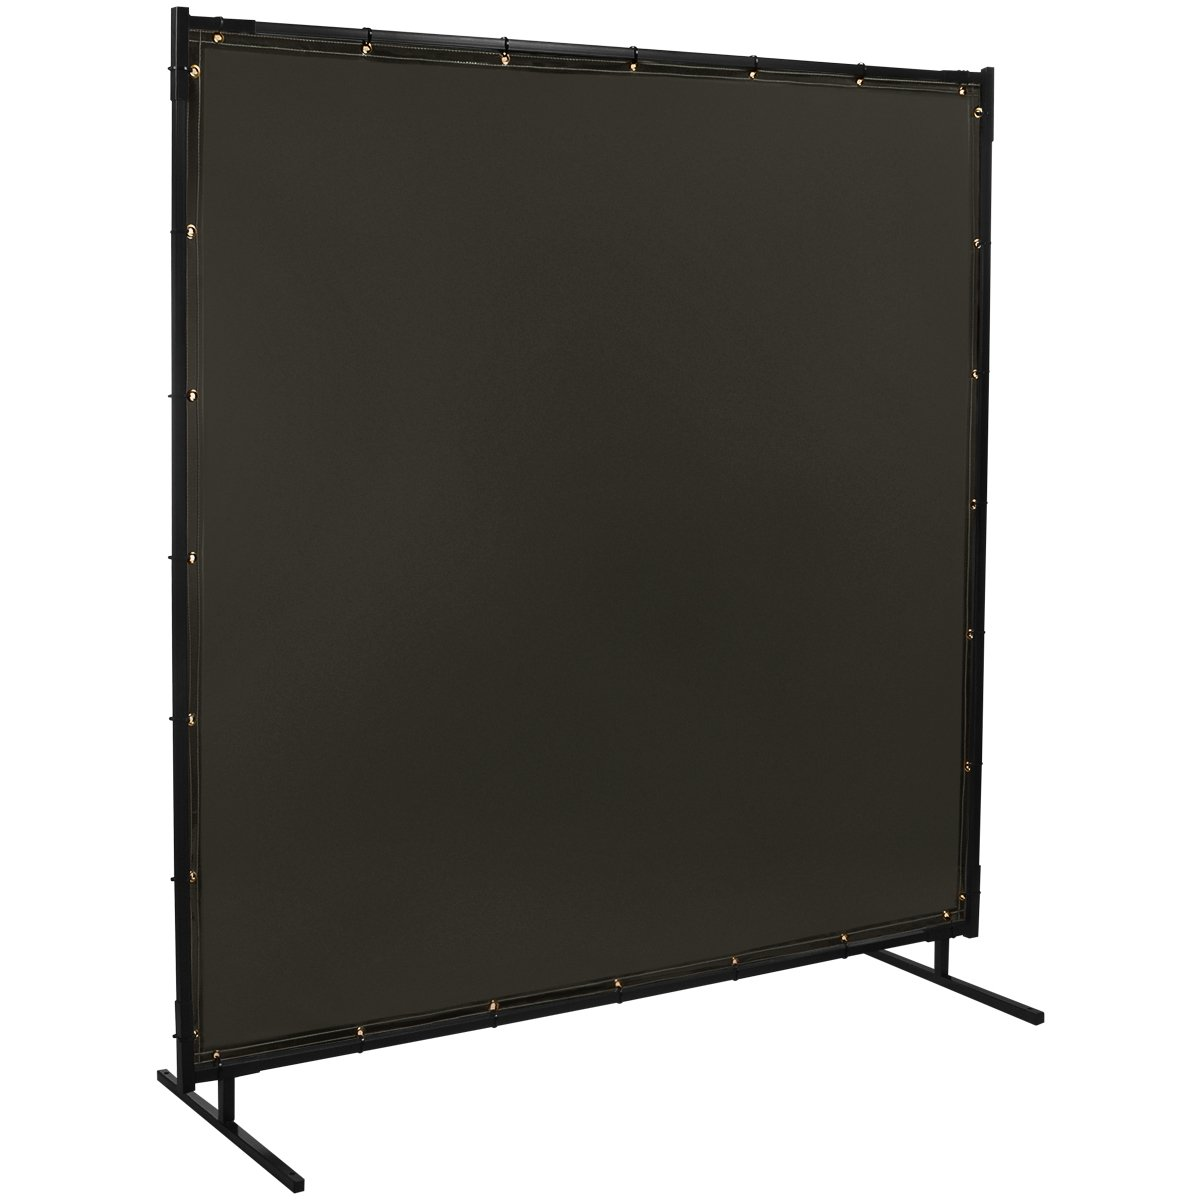 Steiner 532-6X8 Protect-O-Screen Classic Welding Screen with Flame Retardant 14 Mil Tinted Transparent Vinyl Curtain, Gray, 6' x 8' by Steiner